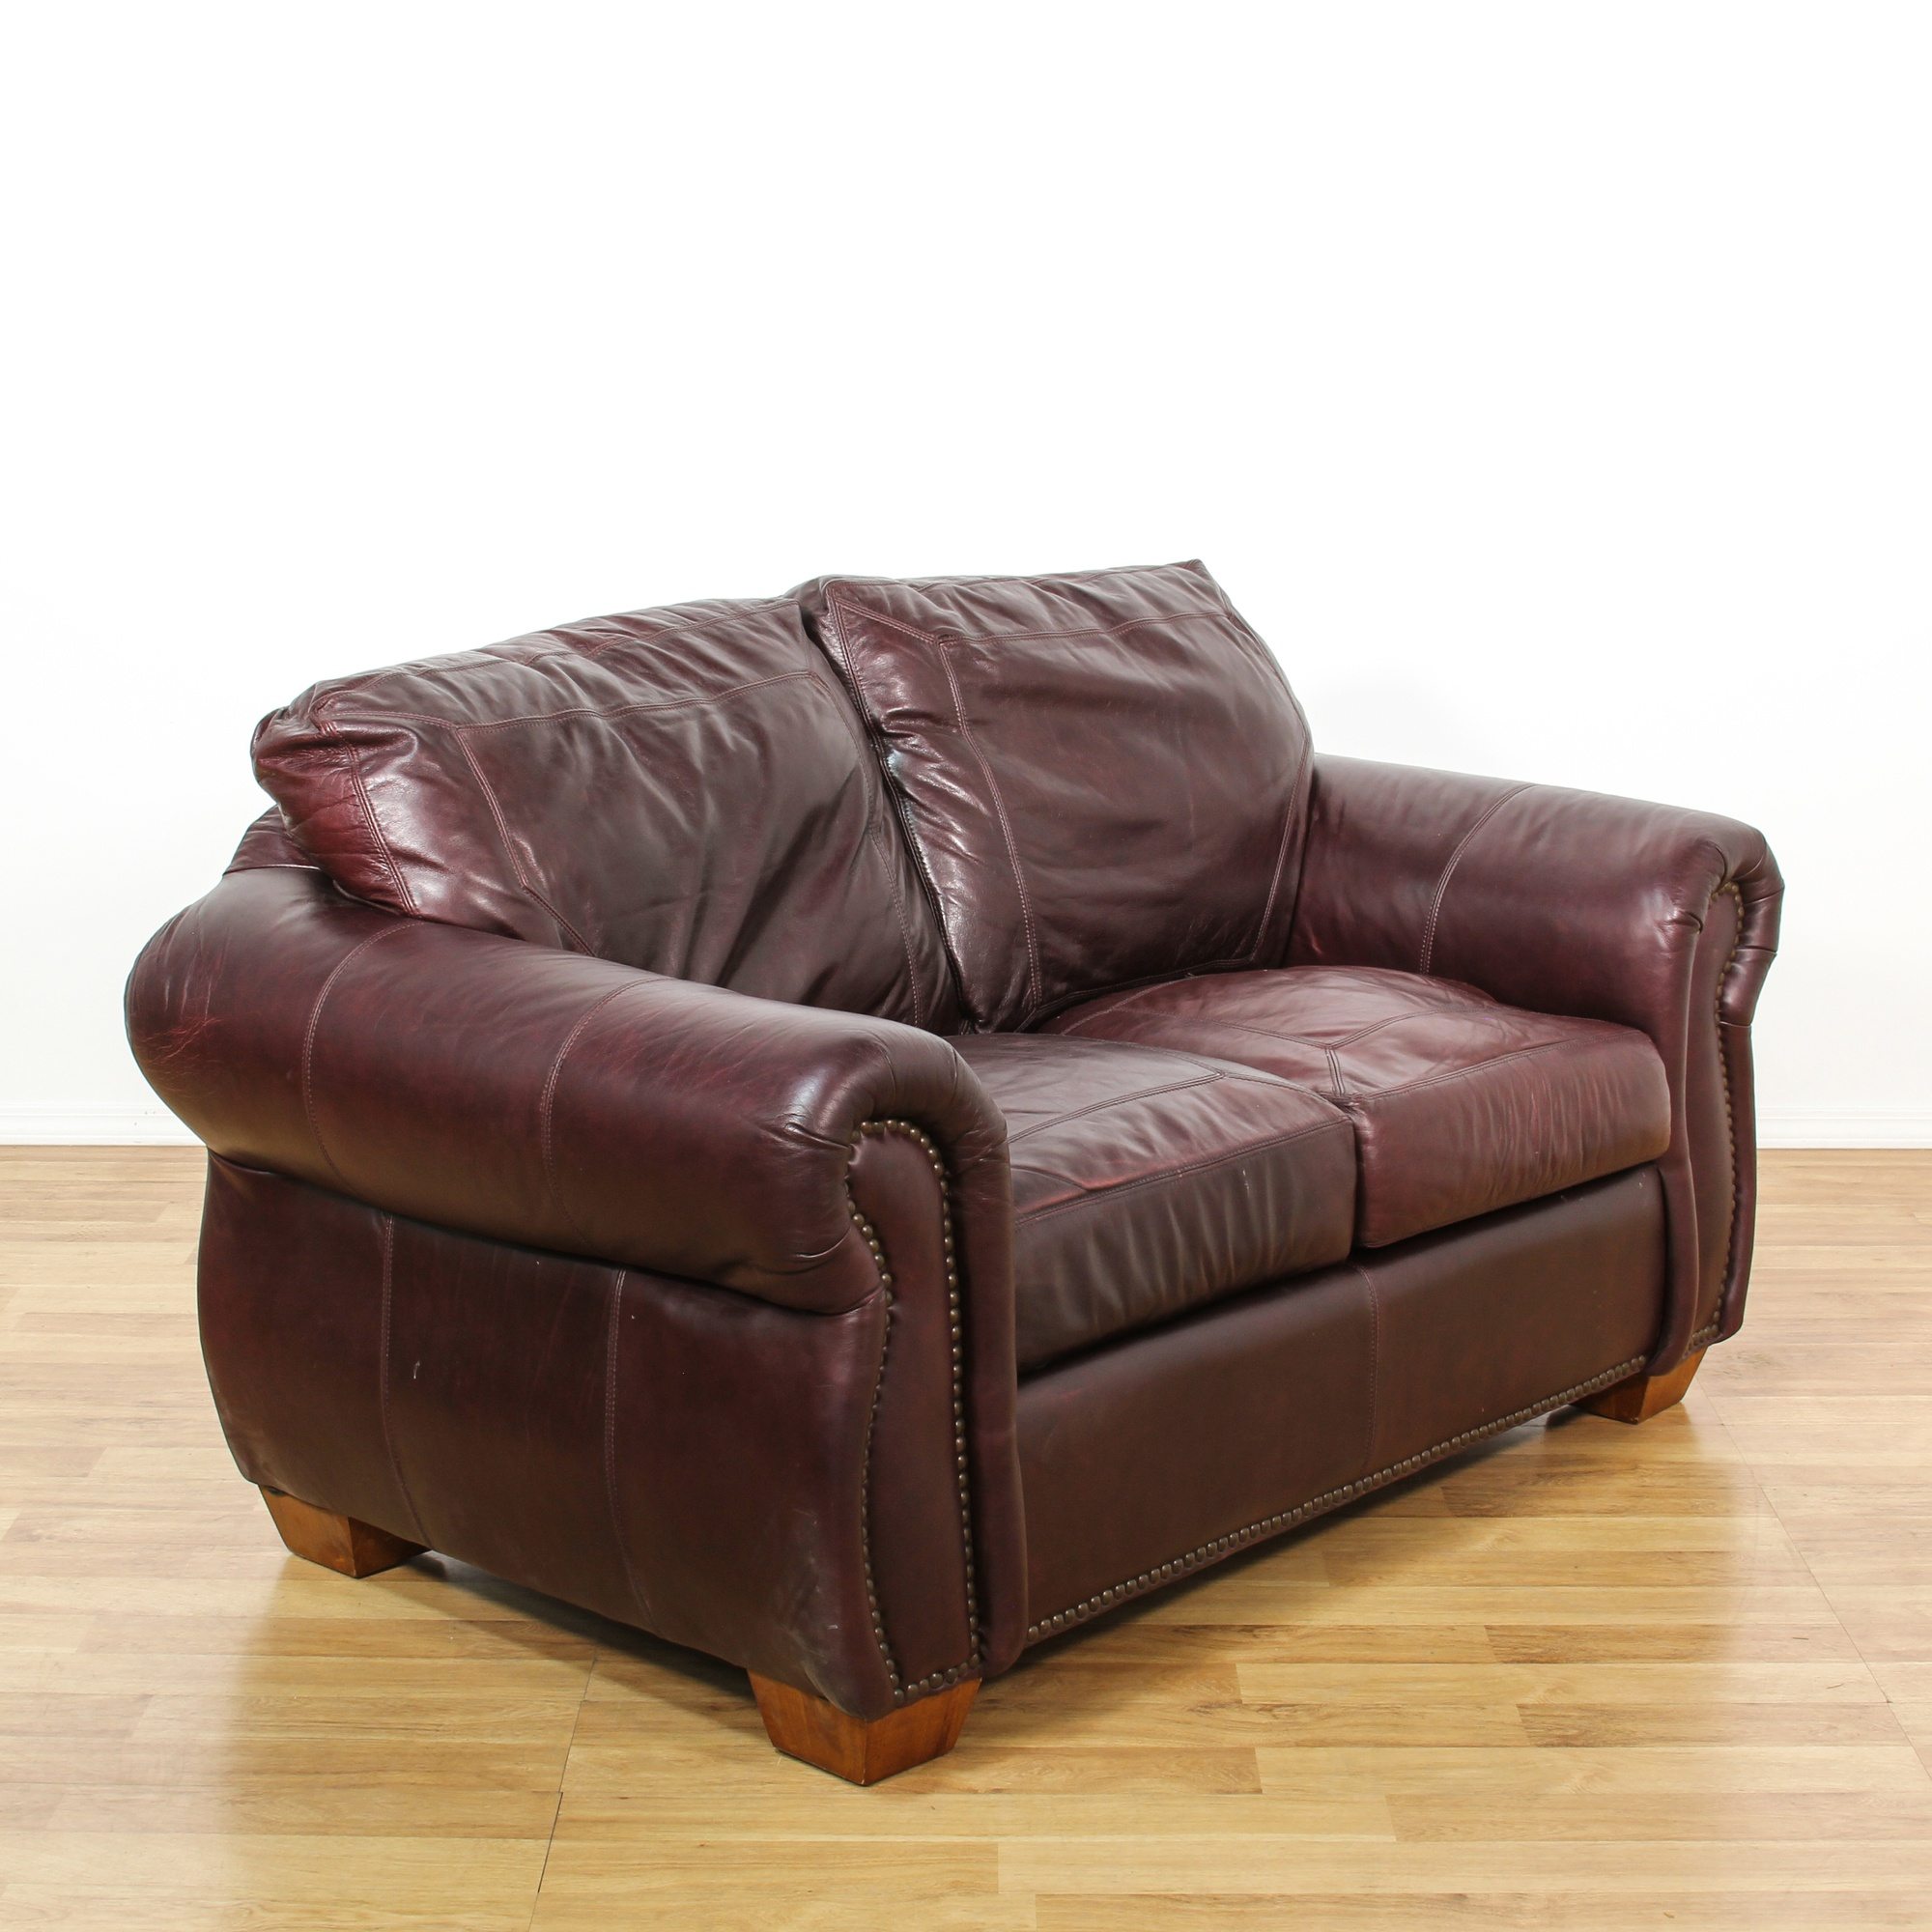 Brown Leather Upholstered Sofa Loveseat